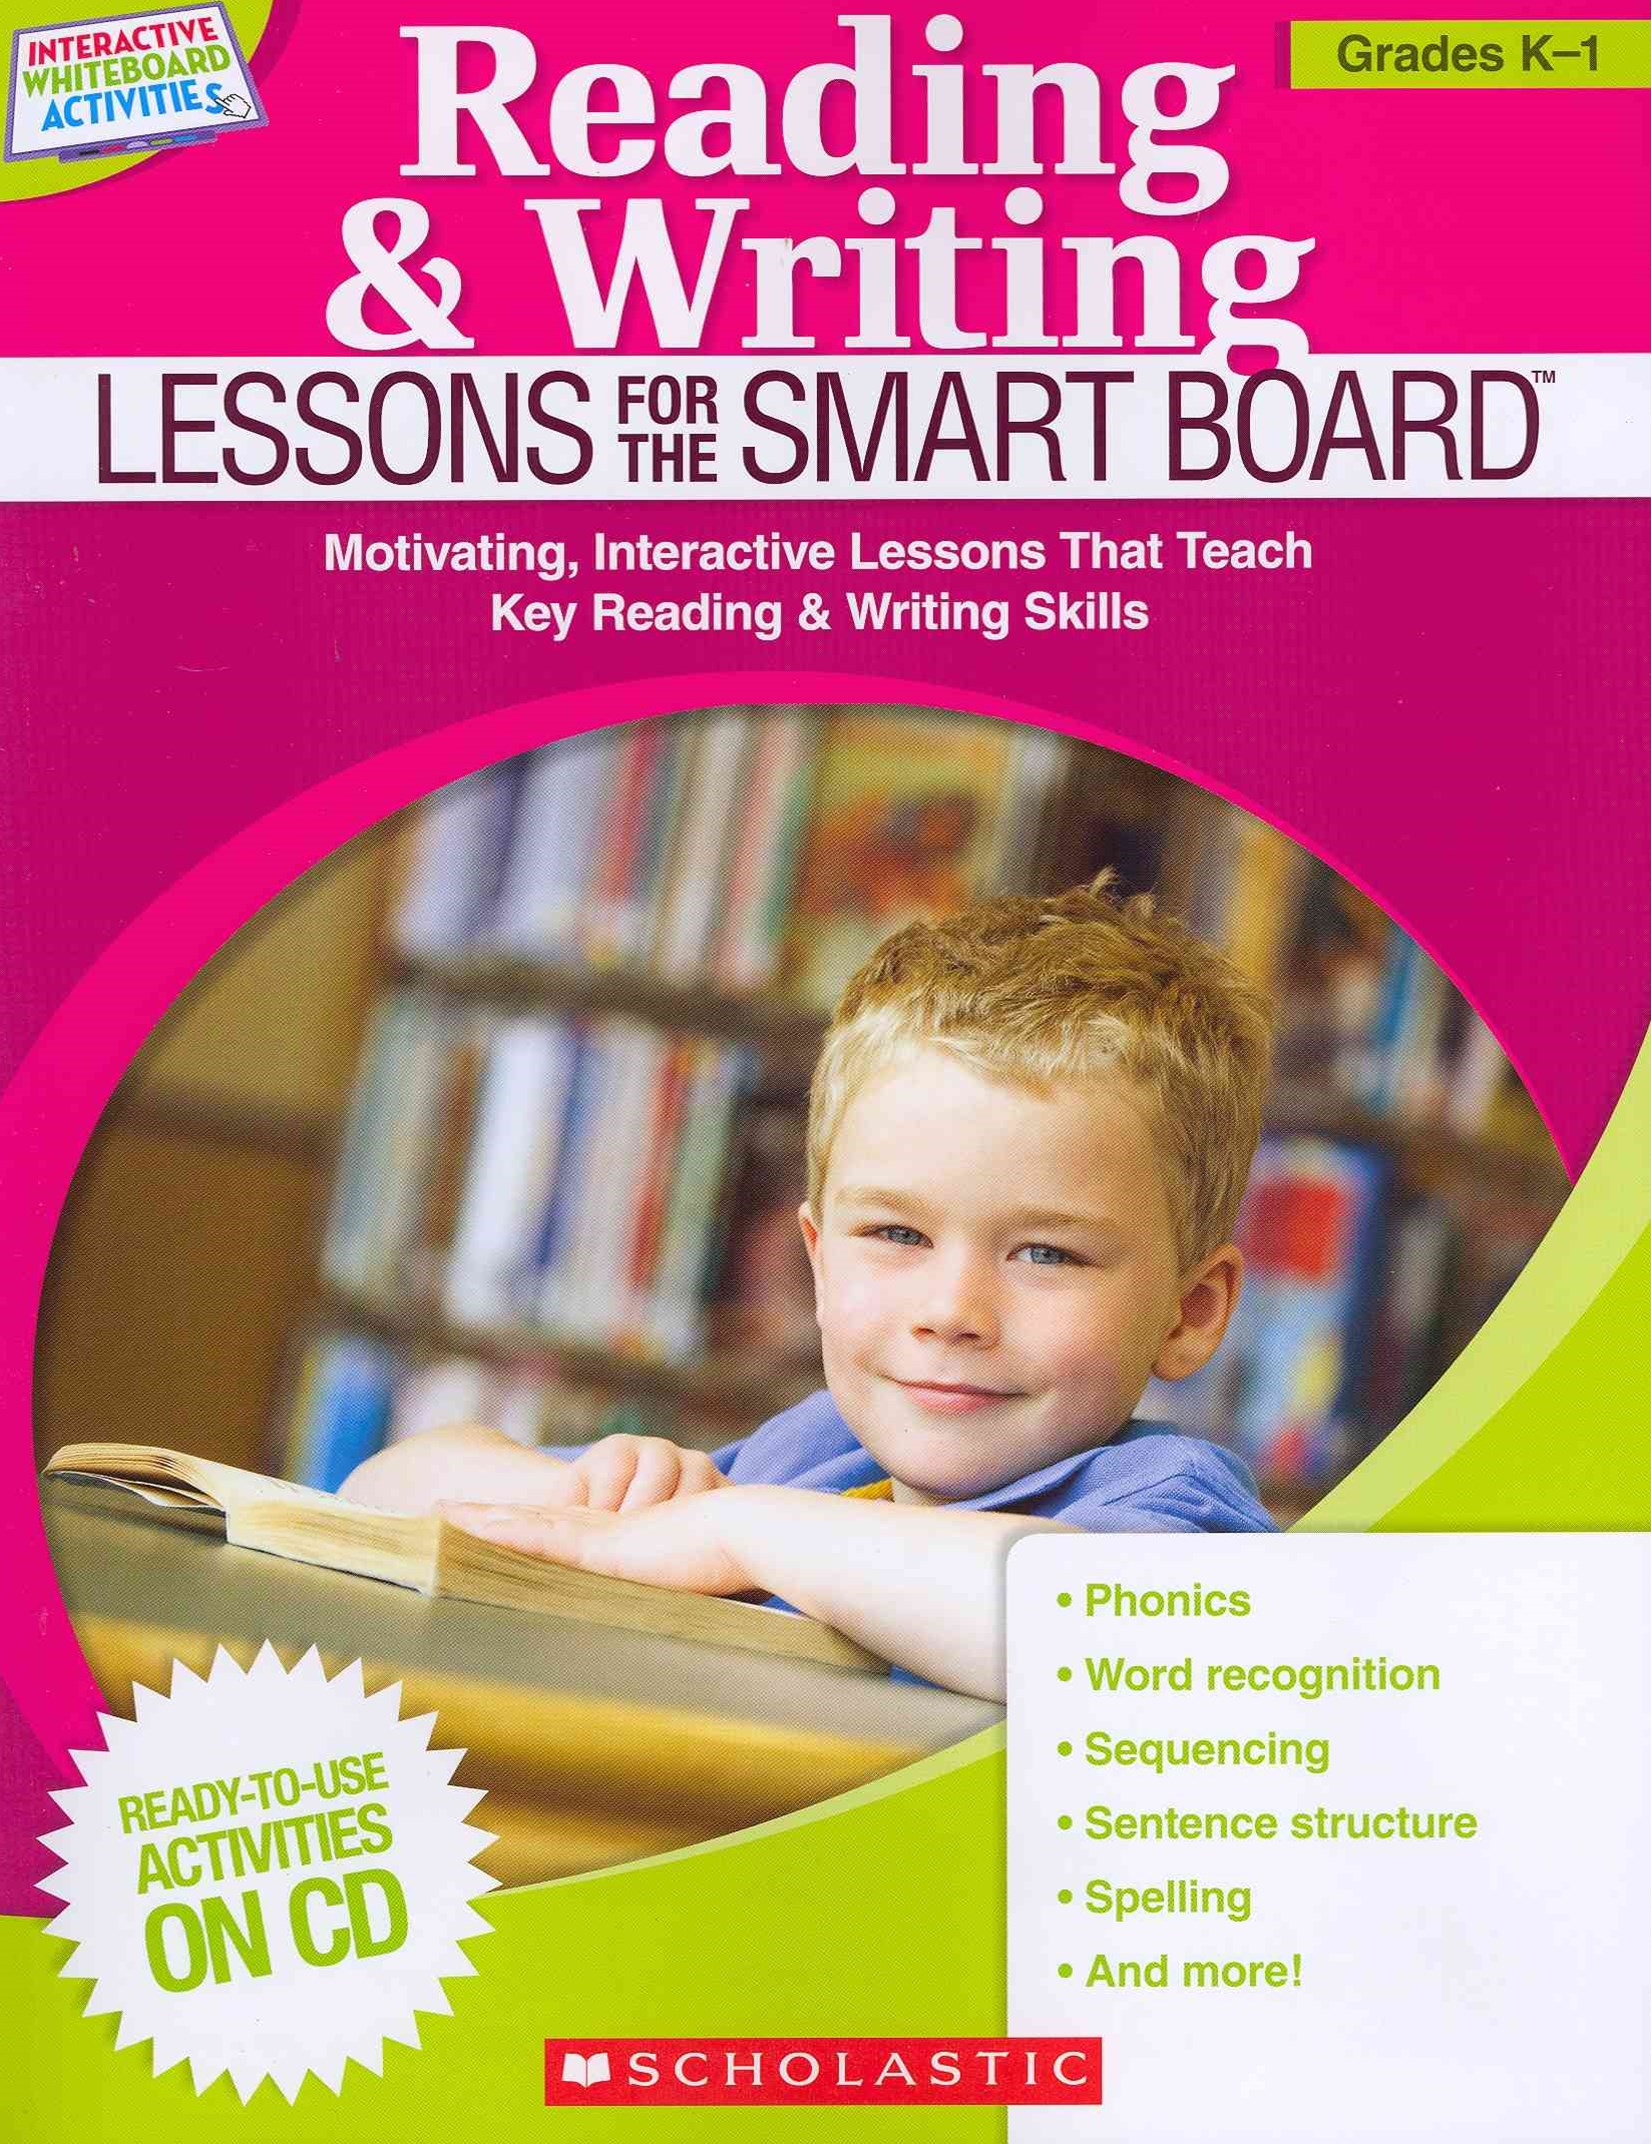 Reading and Writing Lessons for the Smart Board - Grades K-1